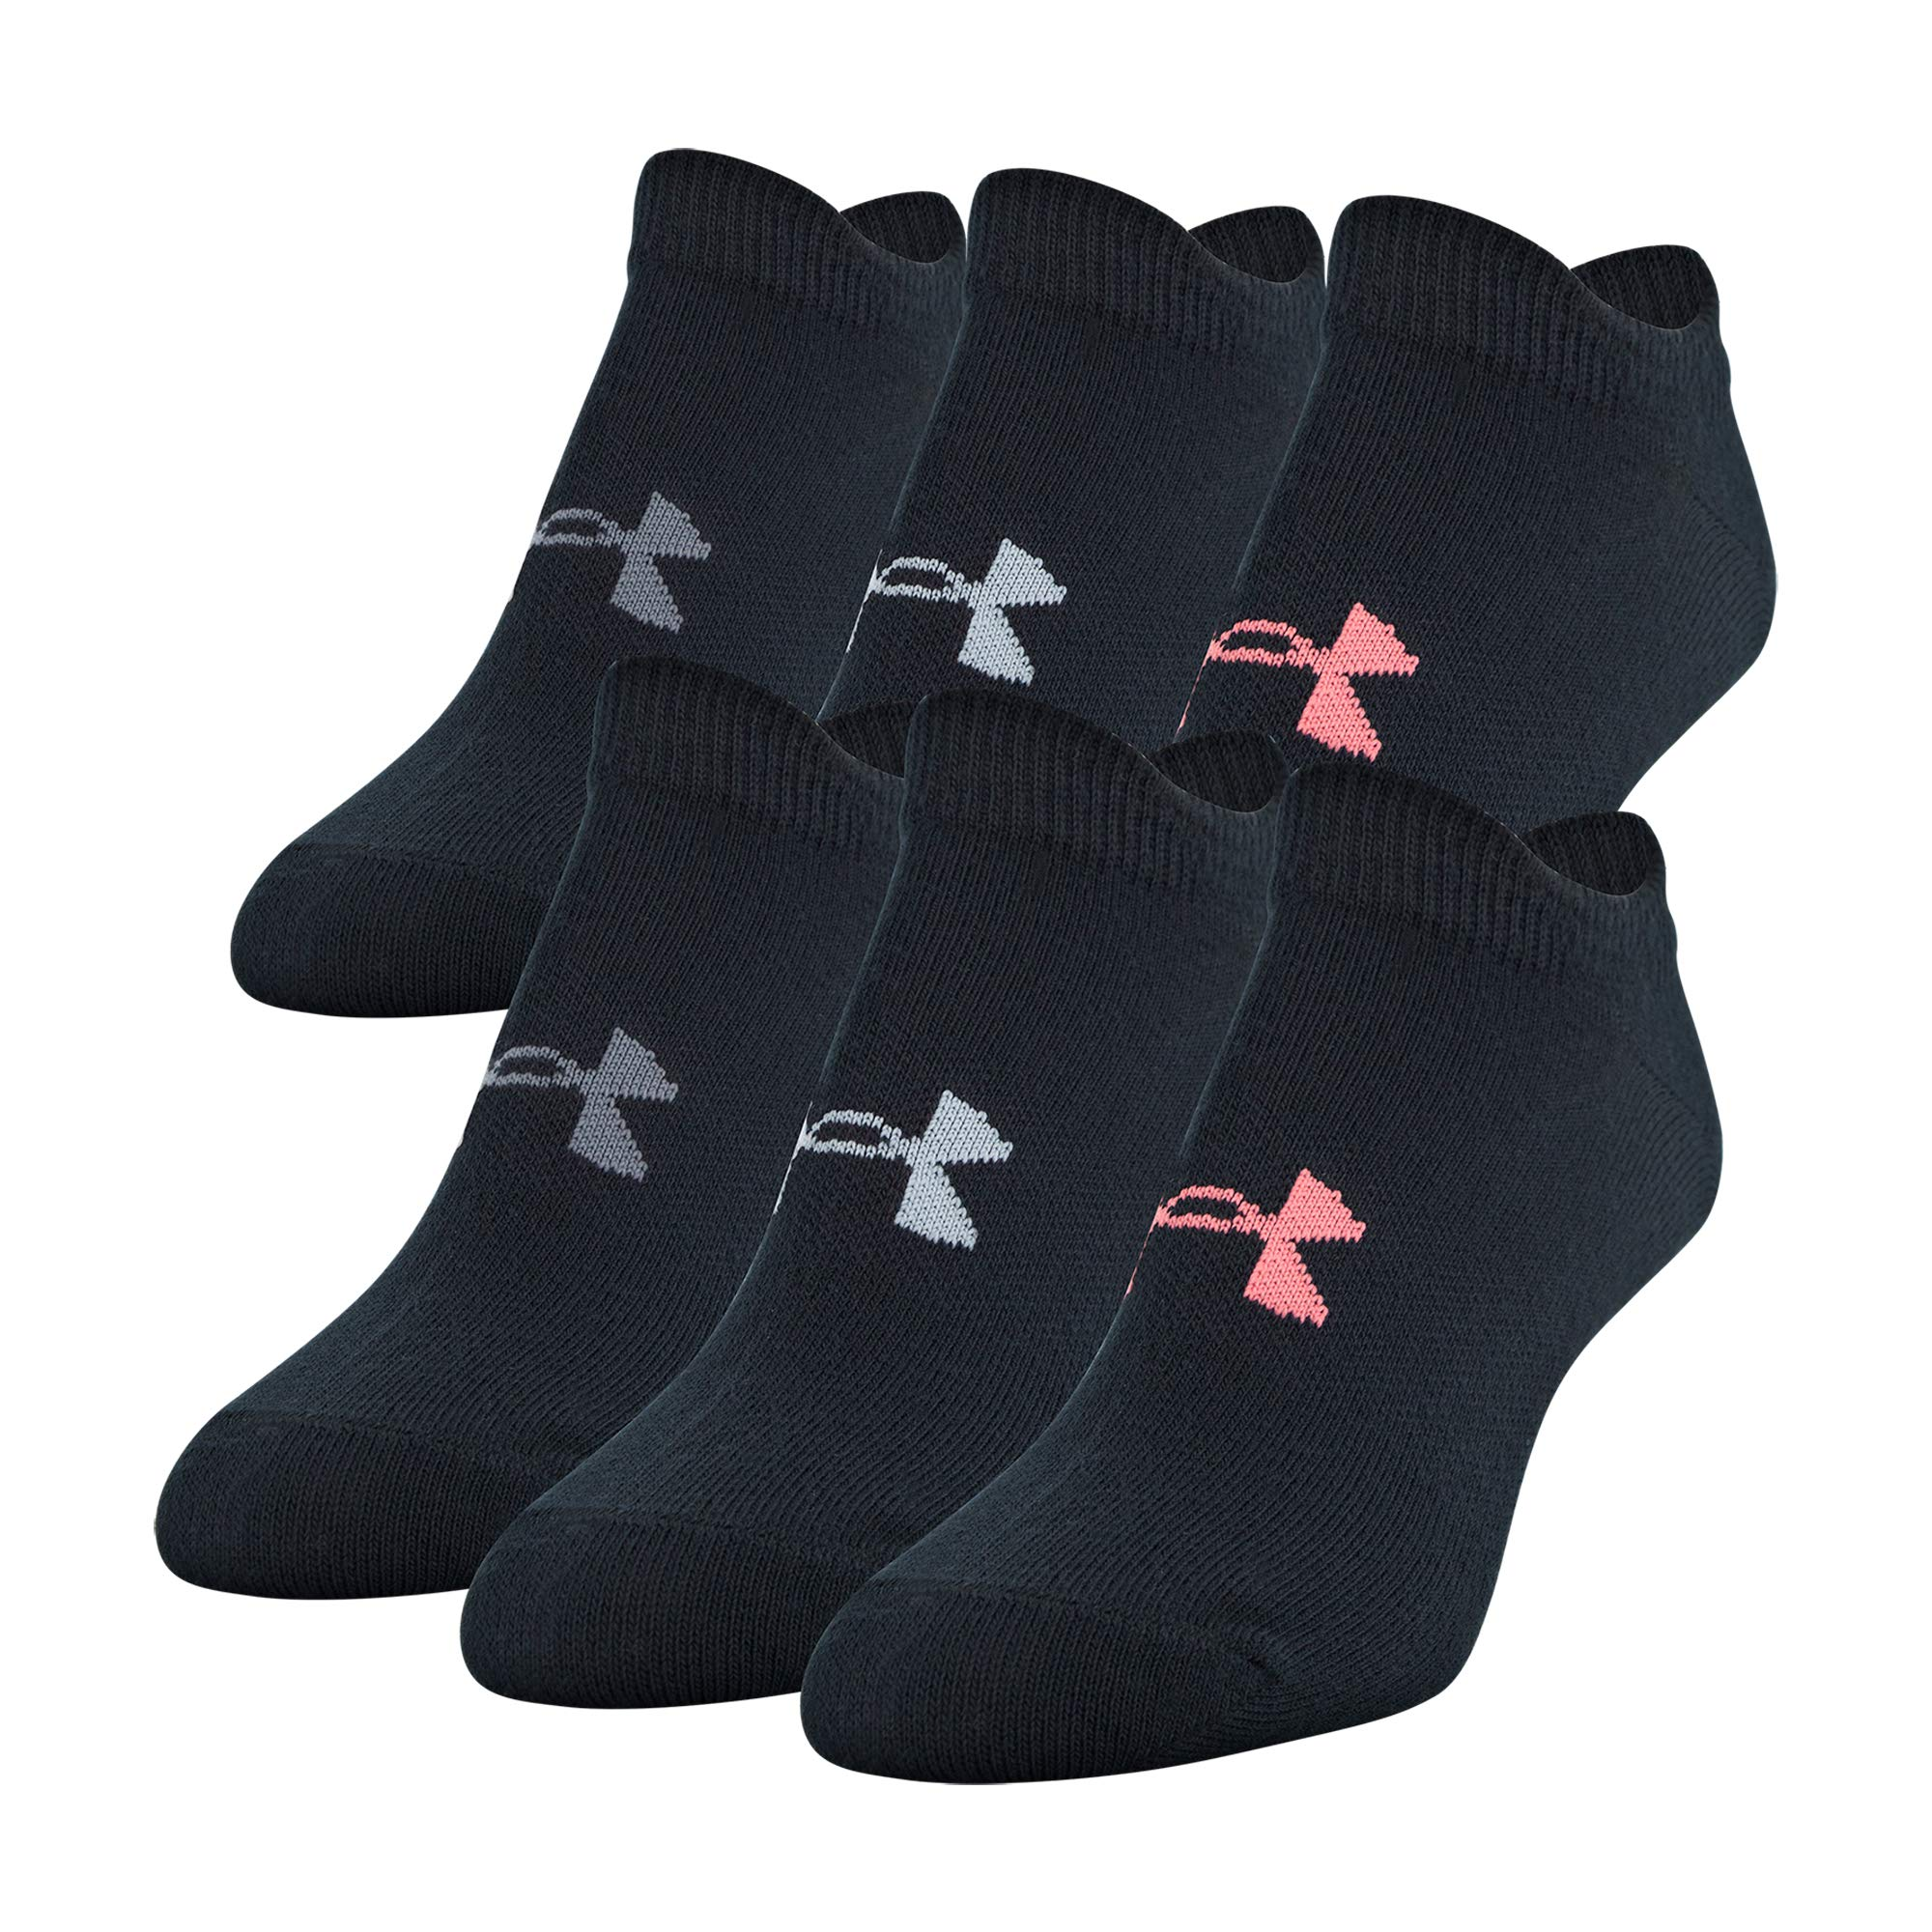 Under Armour Women's Essential 2.0 No Show Socks, 6-Pair, Black Assorted, Medium by Under Armour